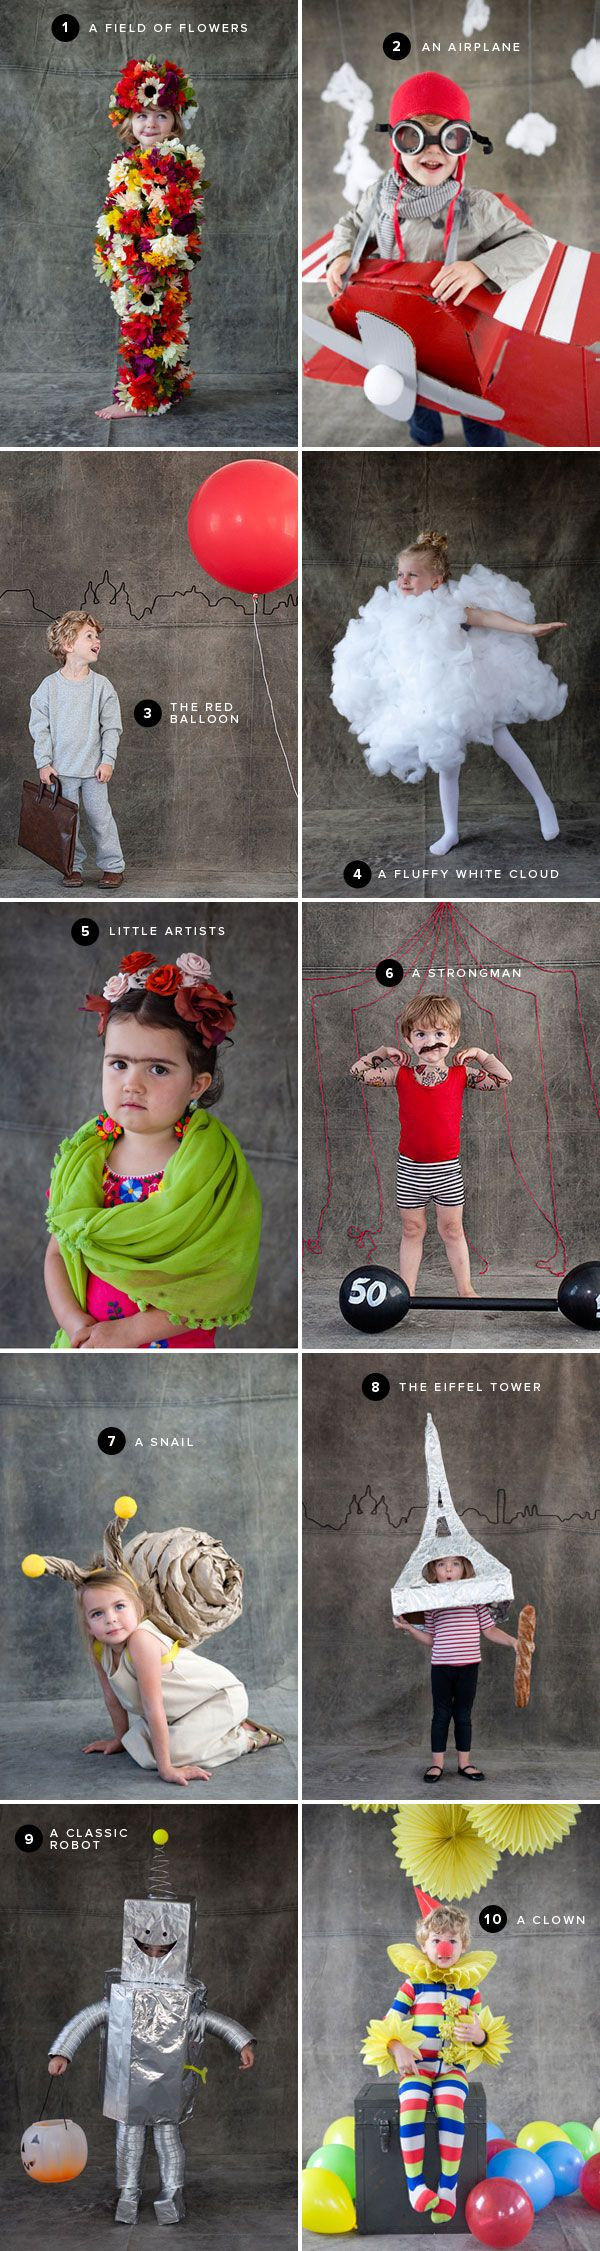 Kids Halloween Costume Ideas - @jordonferney - My favorite has to be the fluffy white cloud. So cute.  sc 1 st  Pinterest : creative costumes for kids  - Germanpascual.Com